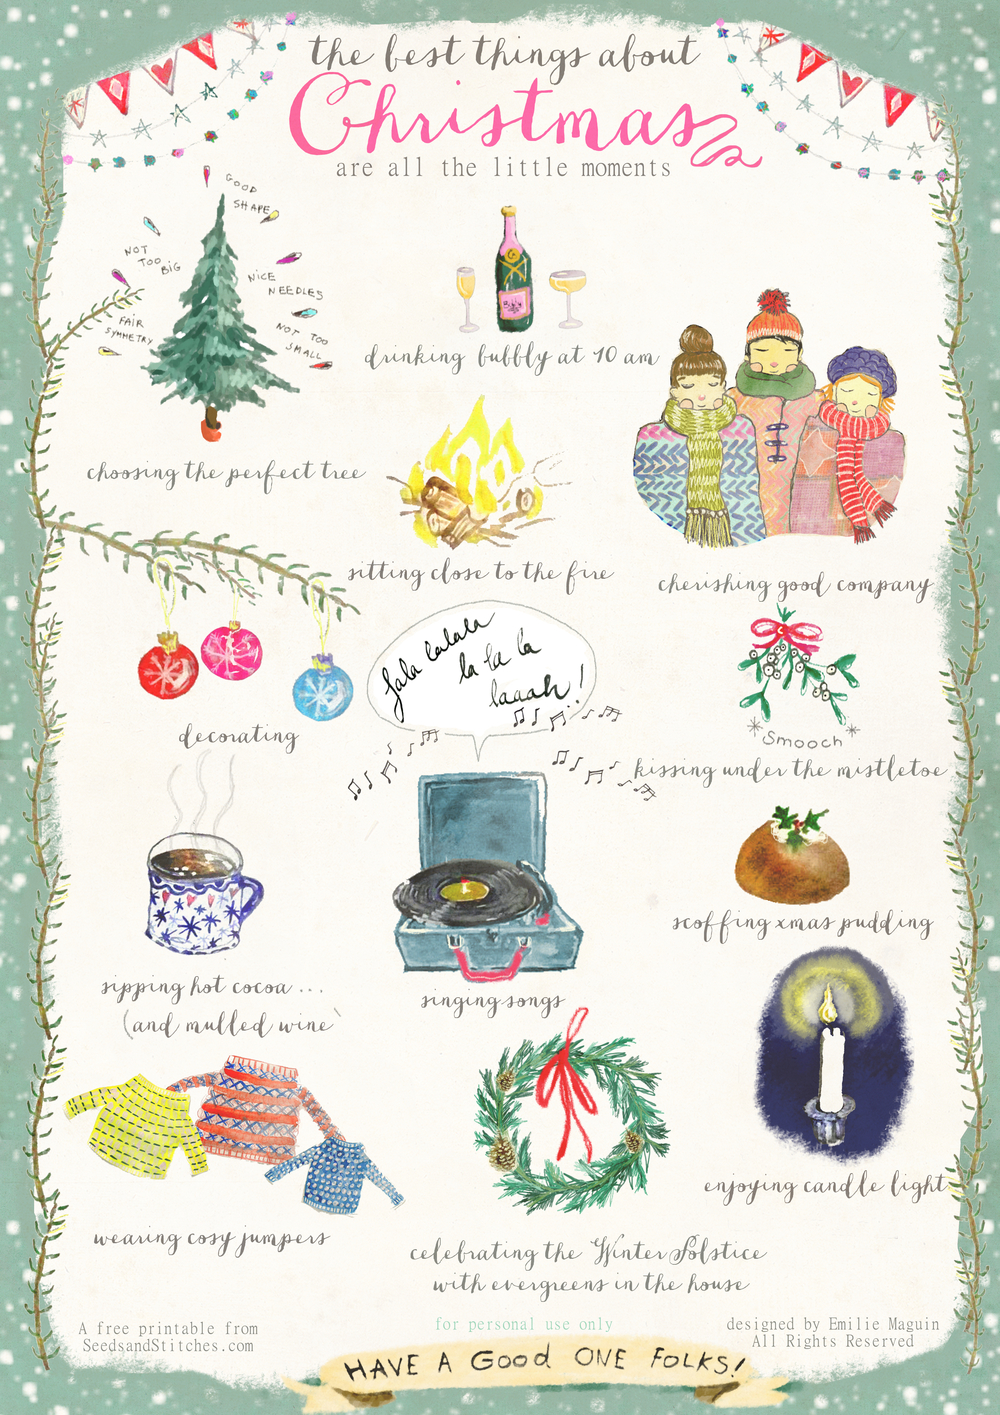 Wonderful Poster/ free card printable by Emilie Maguin for Seeds and Stitches*